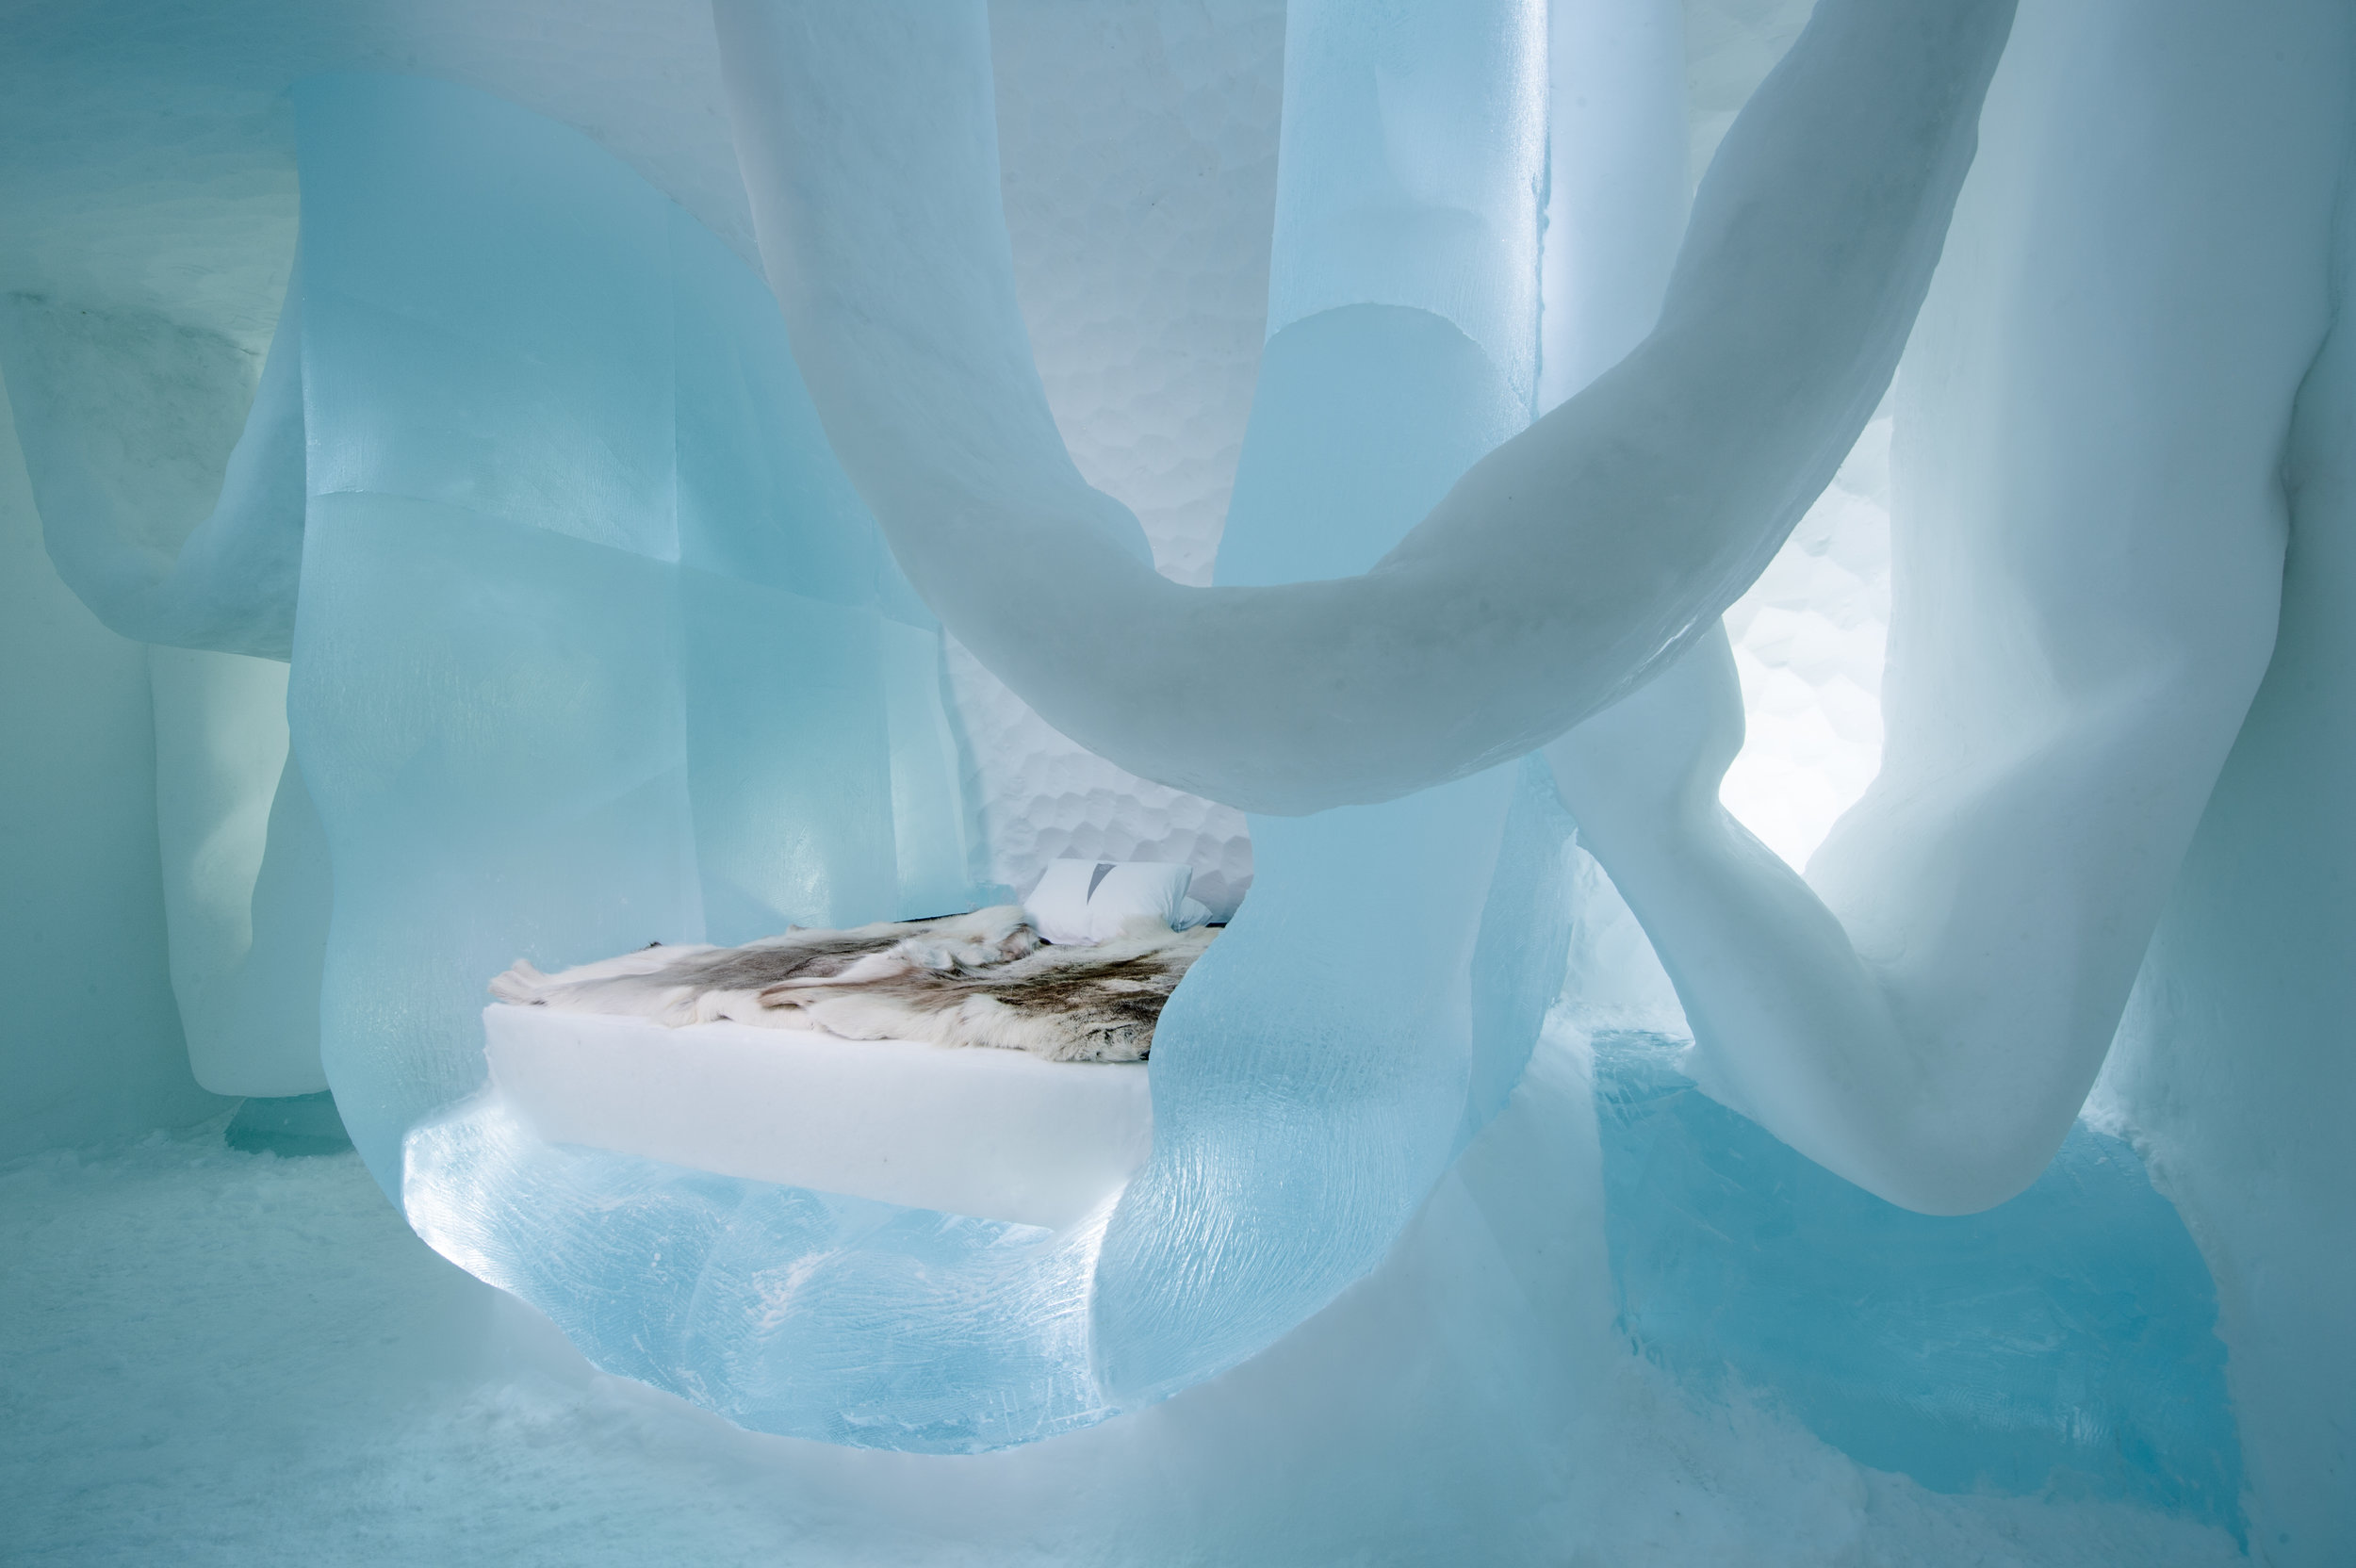 Art suite - Hang in There-Marjolein Vonk & Maurizio Perron ICEHOTEL 28  Photo by - Asaf Kliger.jpg